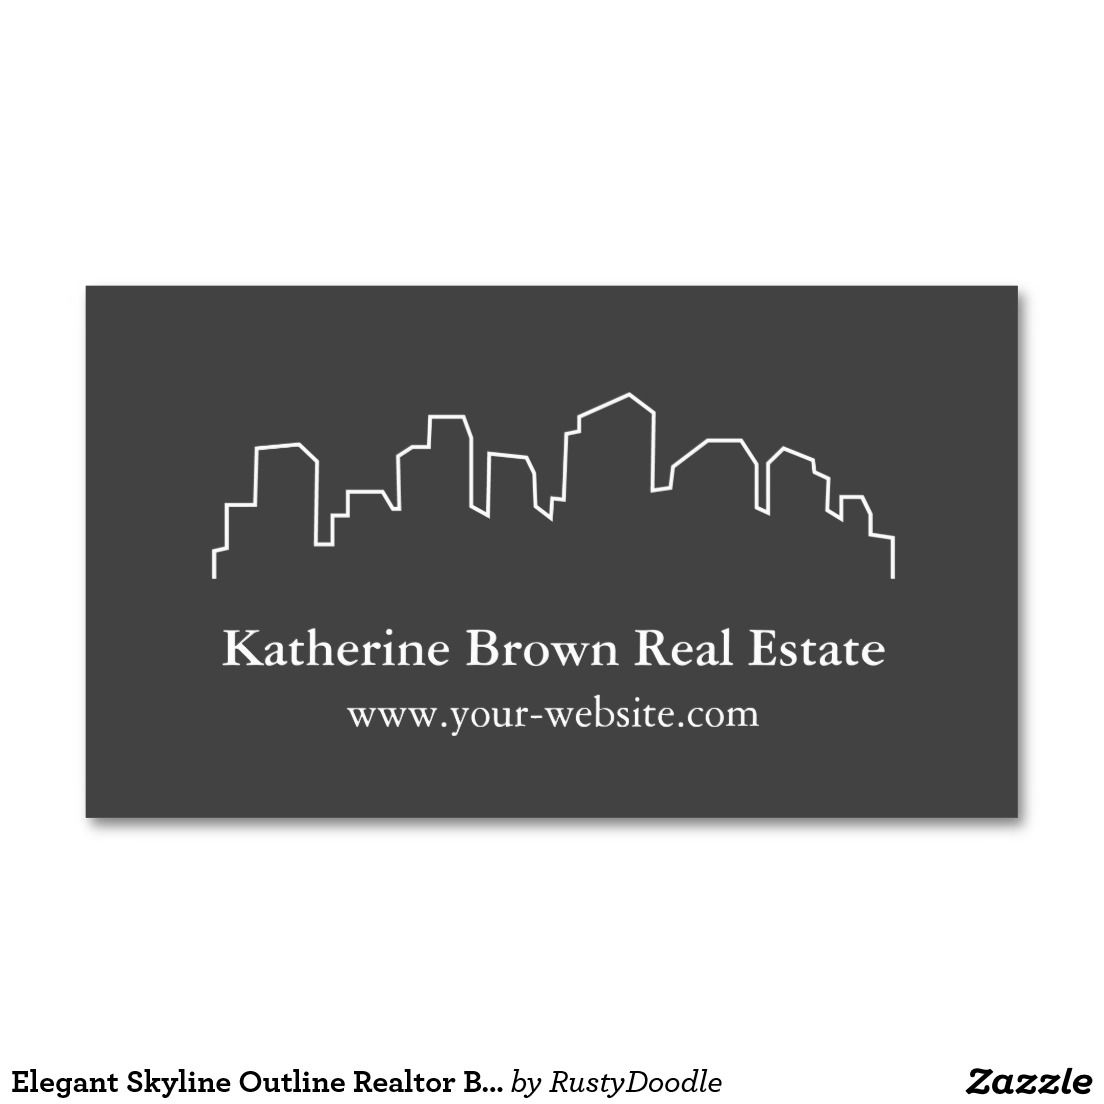 Elegant skyline outline realtor business cards strictly business elegant skyline outline realtor business cards colourmoves